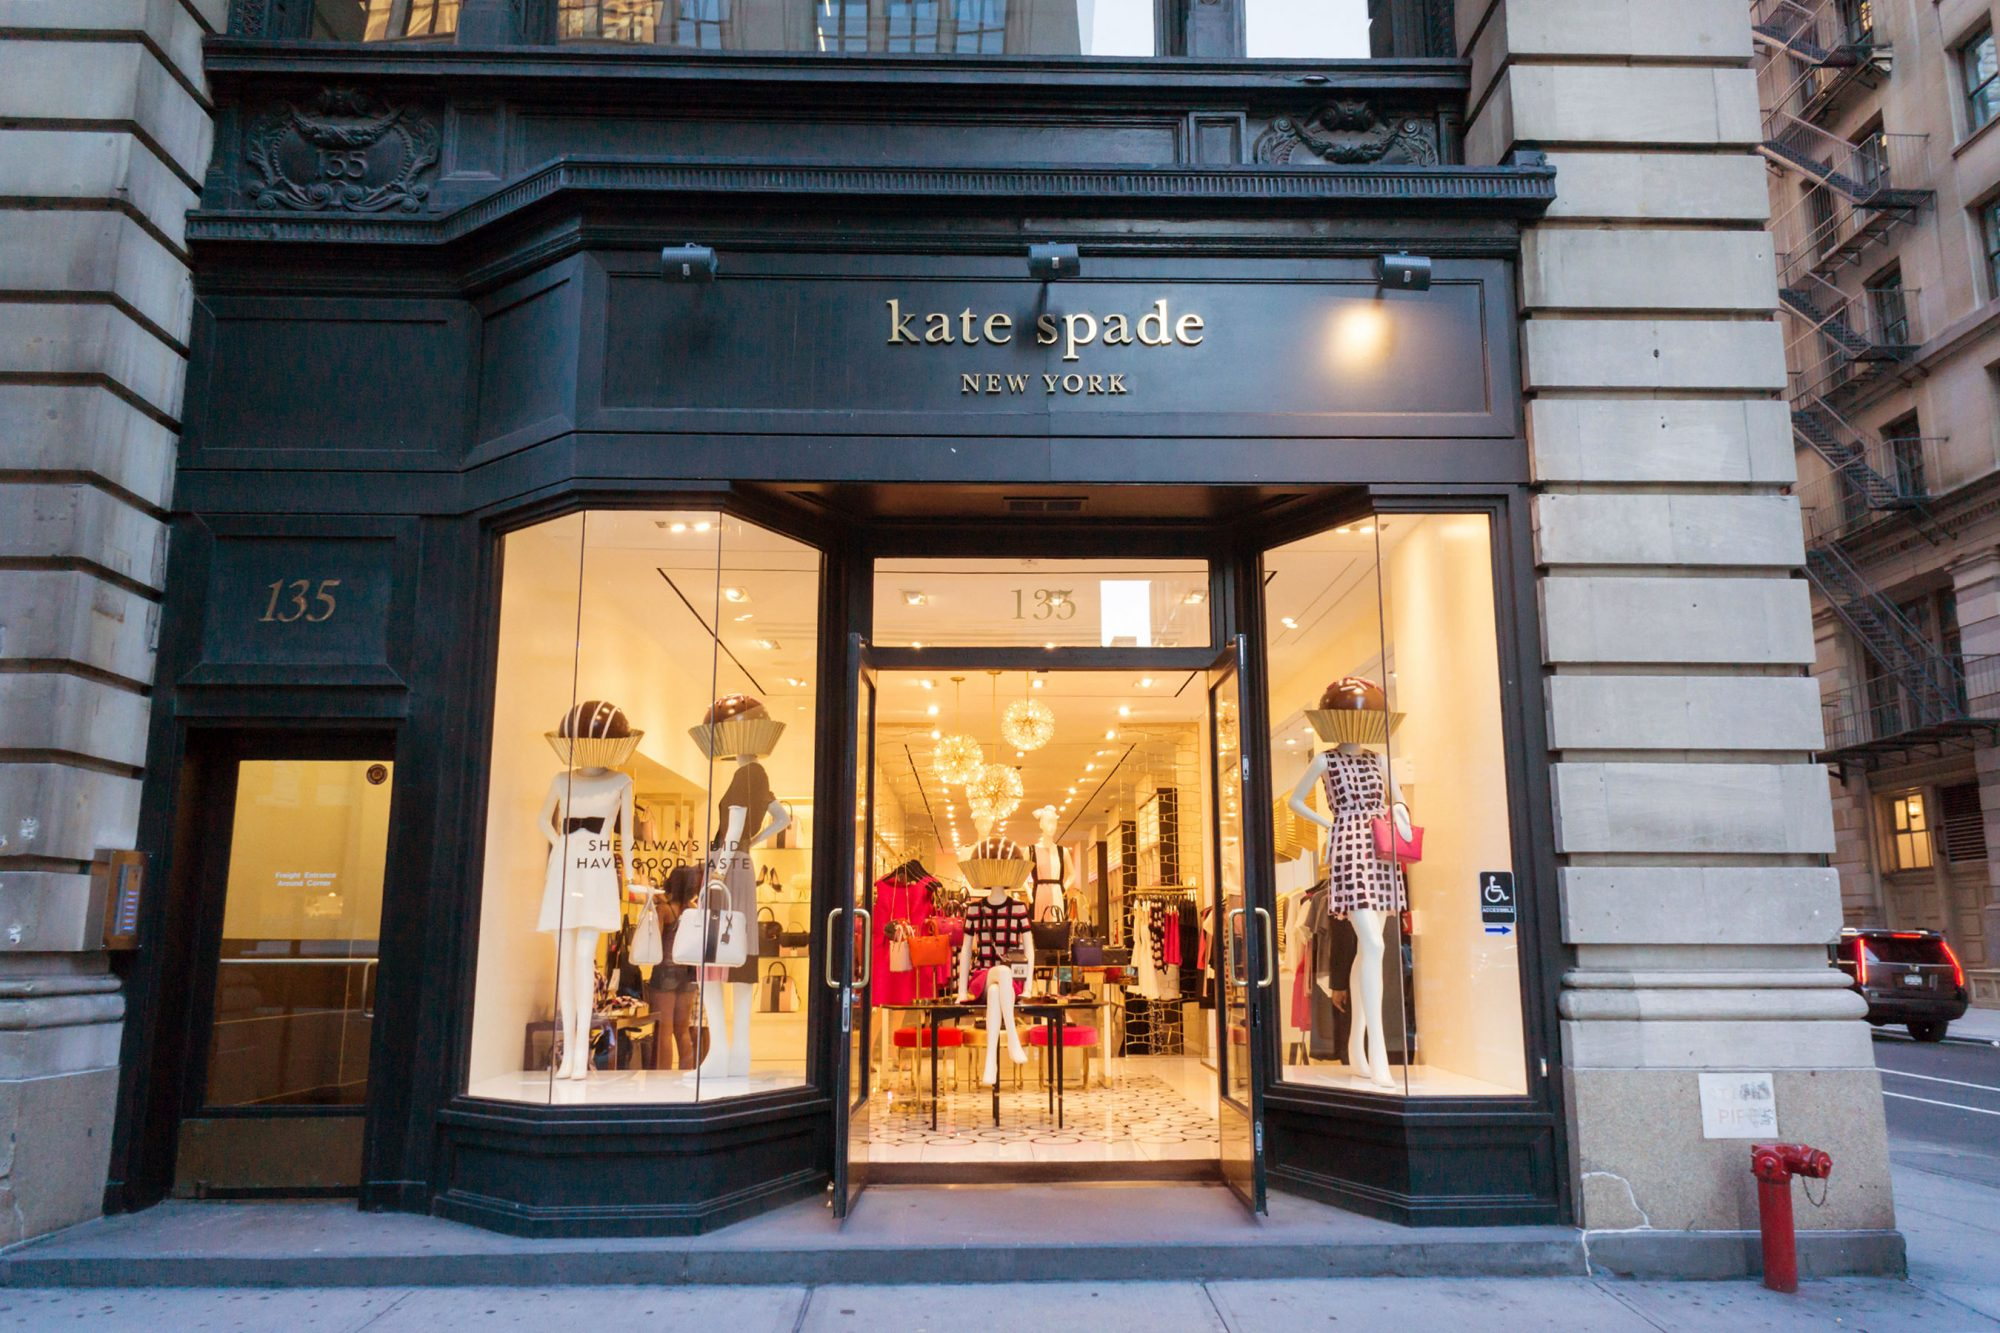 File image: A Kate Spade store on Fifth Avenue in the Flatiron neighborhood of New York on Tuesday, August 4, 2015. Kate Spade & Co. reported sales increased 5.7% but were below analysts' expectations. The company has sold off and closed brands to concent